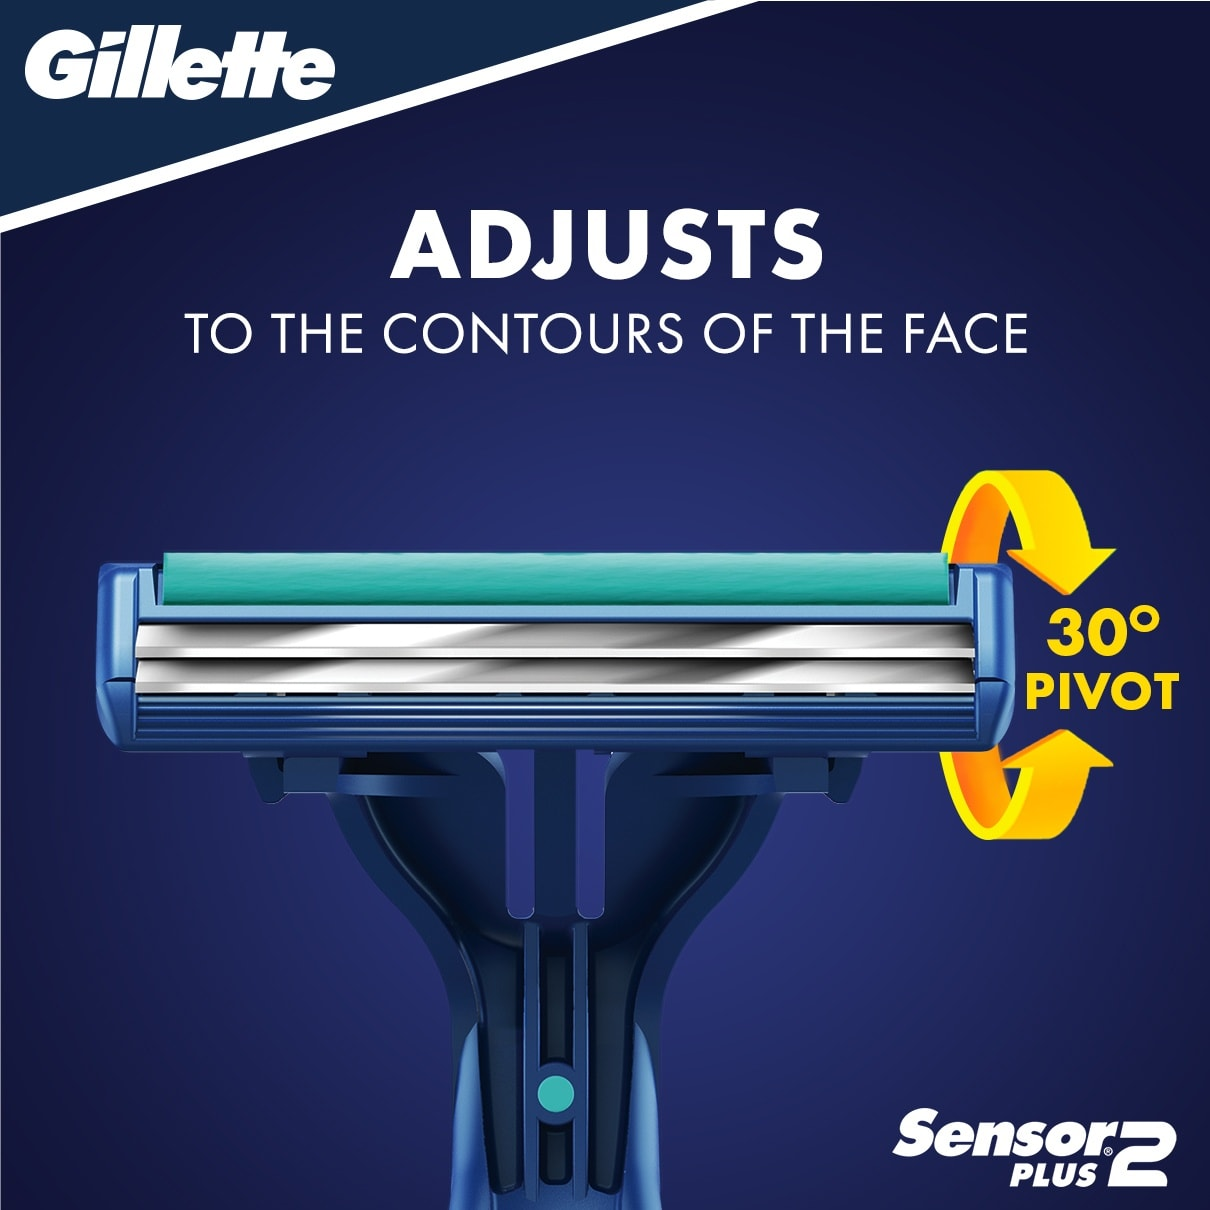 Sensor2 Plus Pivot Disposable Razors